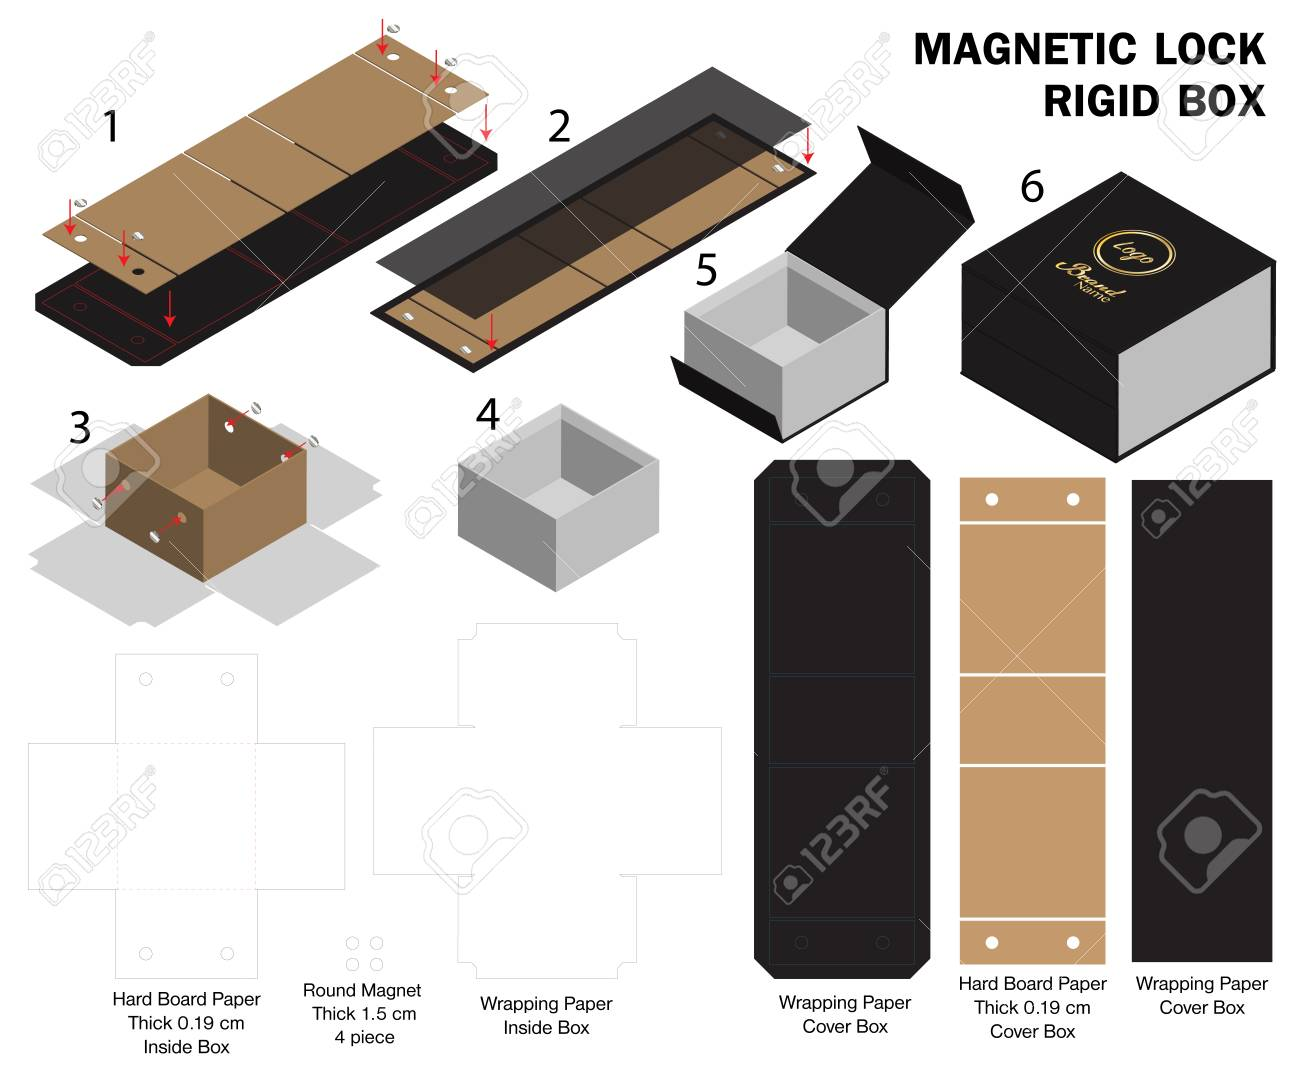 Rigid Magnet Box Template 3d Mockup With Dieline Royalty Free